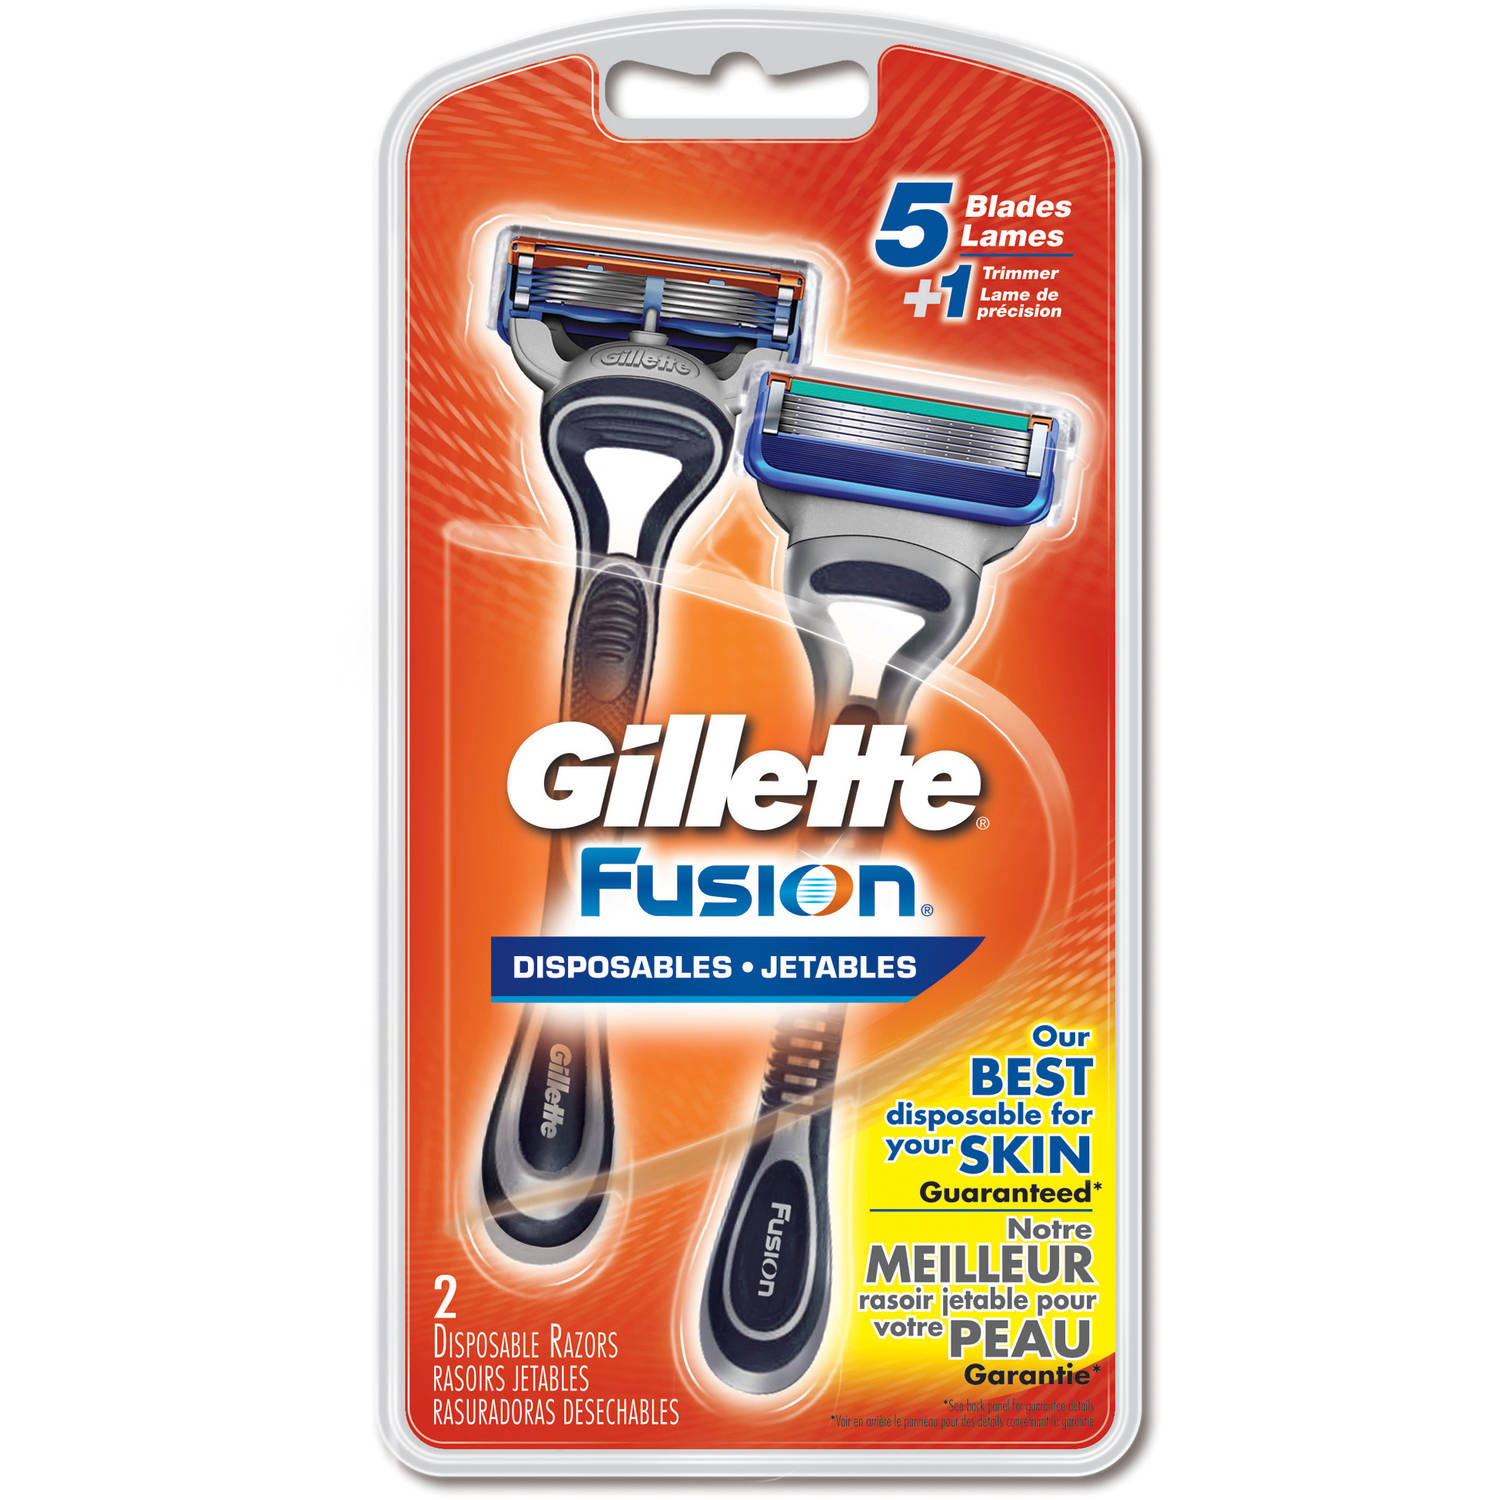 Gillette Fusion Disposable Razors, 2 count